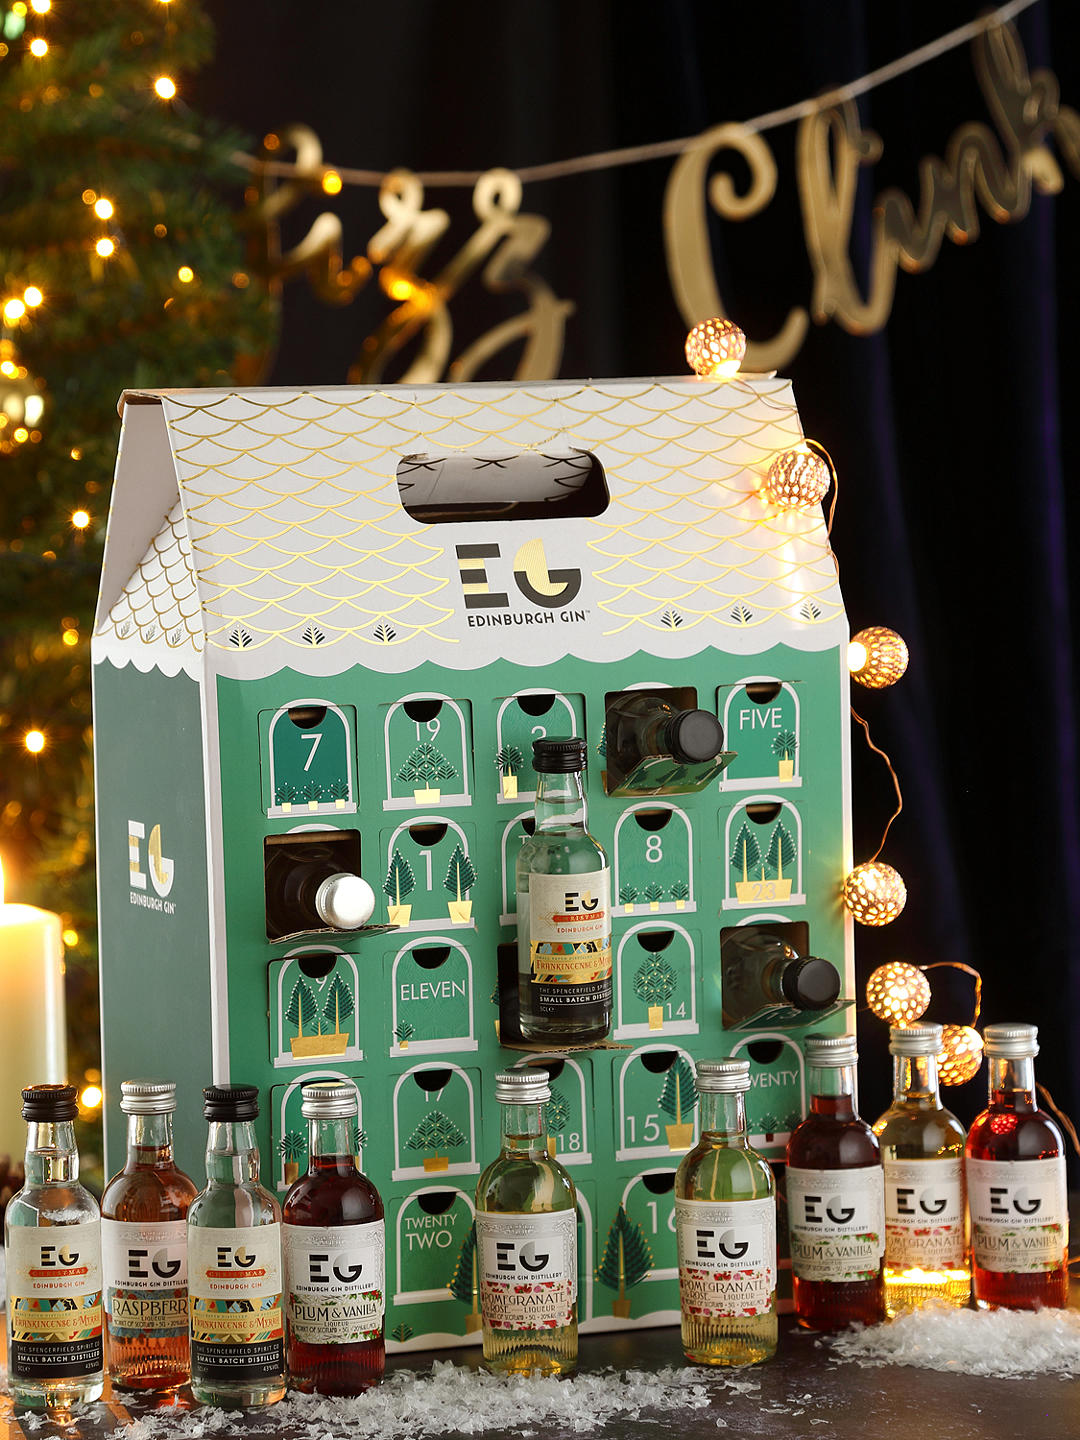 Countdown to Christmas with a gin advent calendar